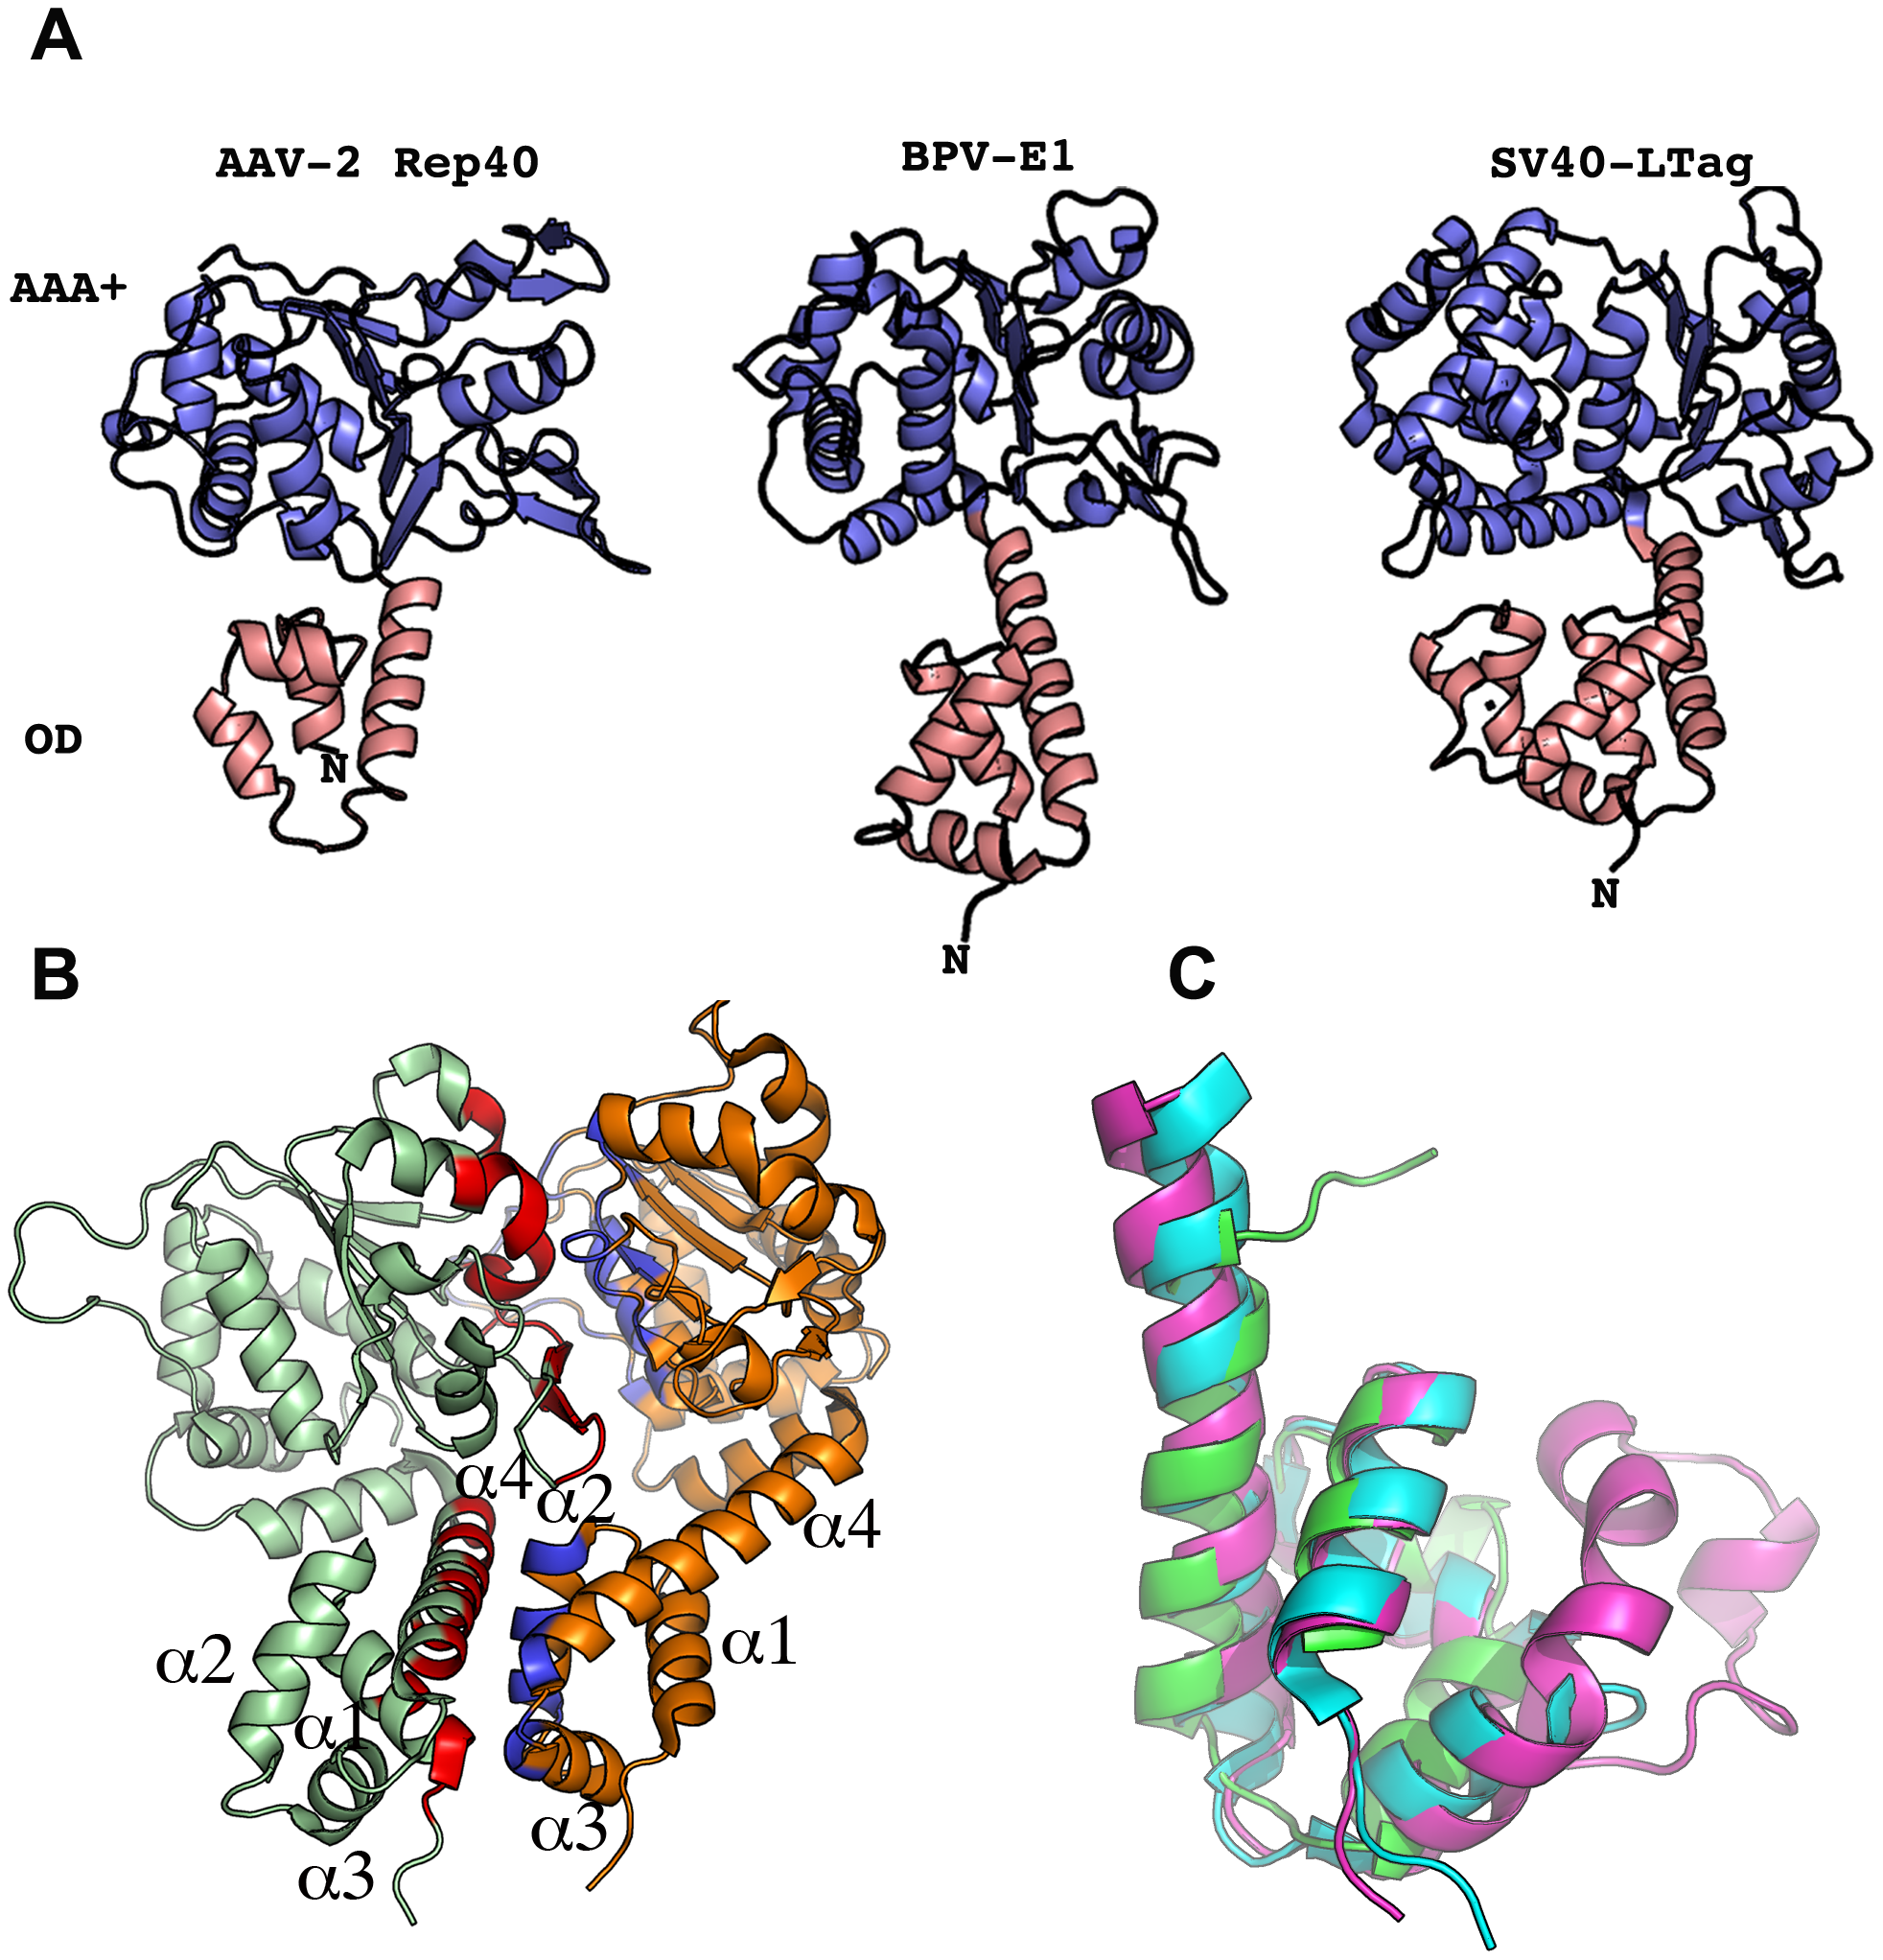 Structural comparison of SF3 helicase structures.